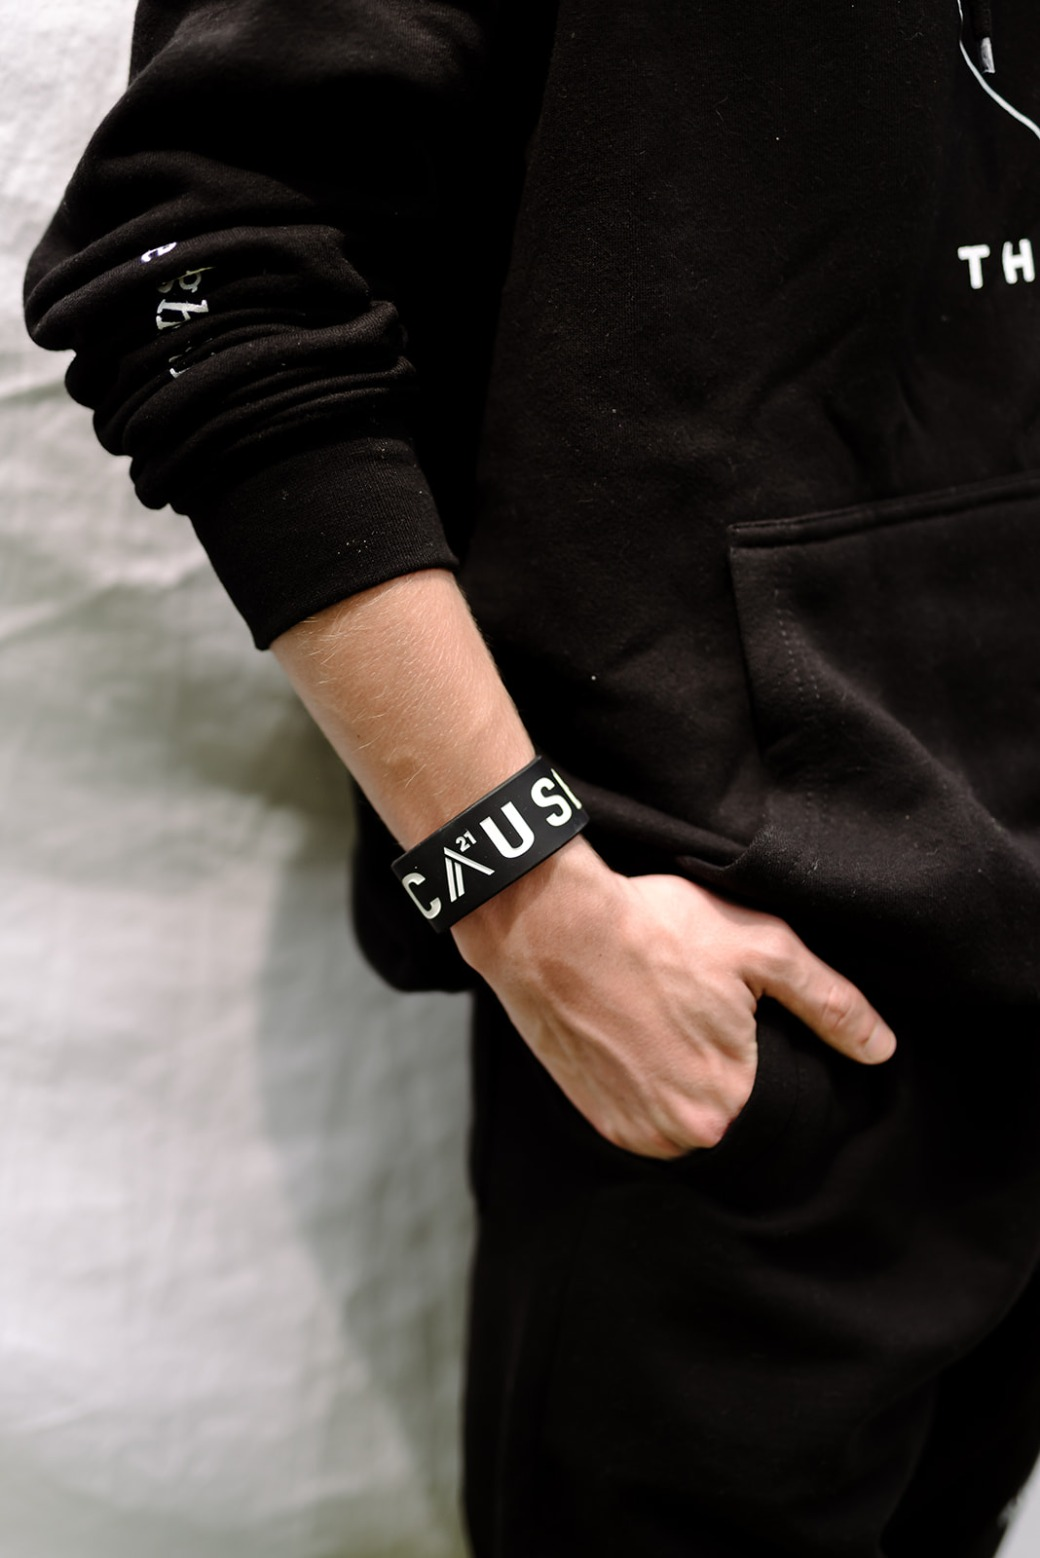 Black thick Because Band on arm with hand in pocket